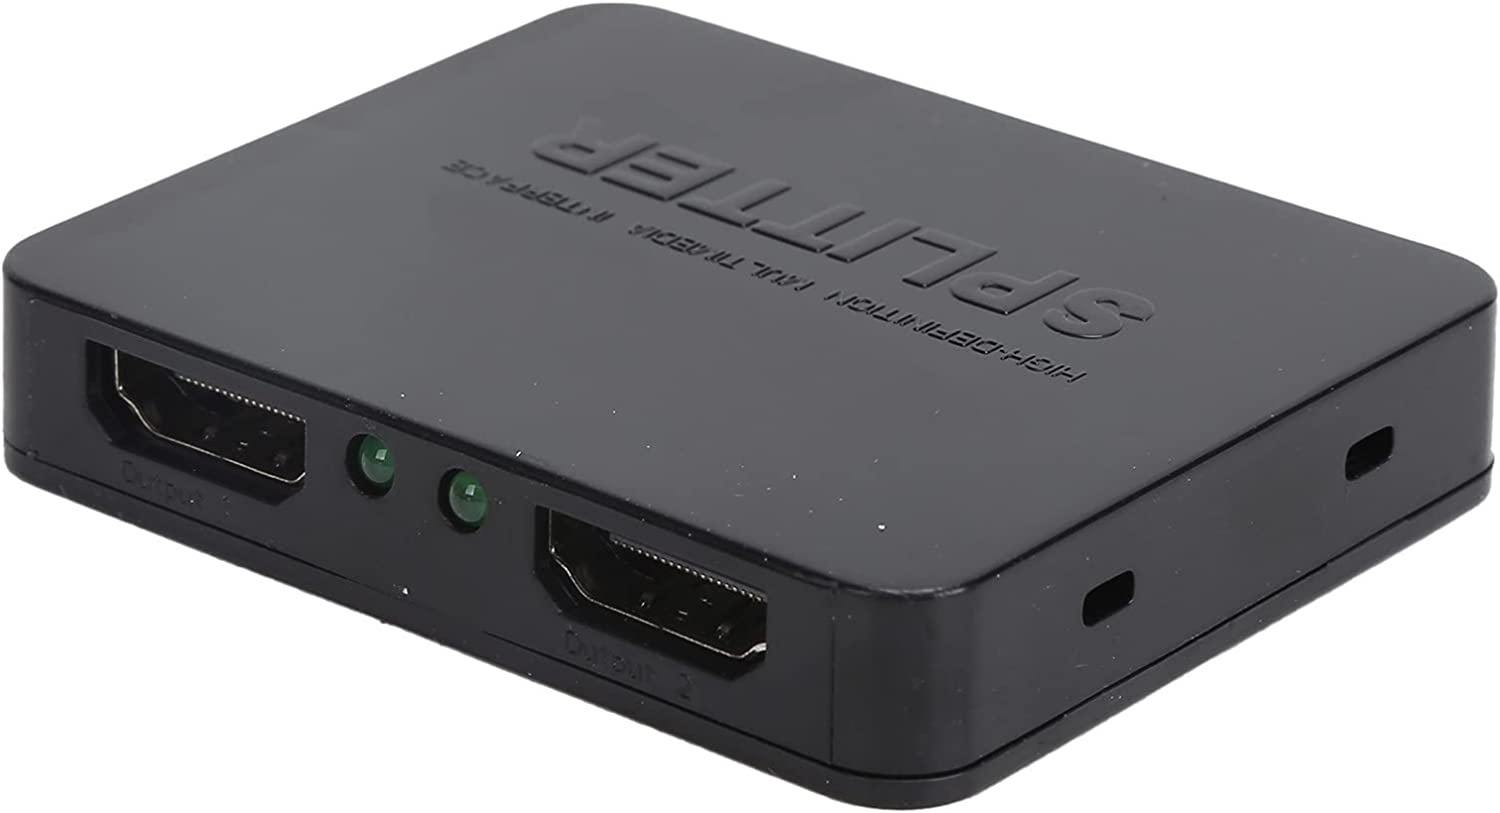 753 HDMI Splitter 1 Max 61% OFF 40% OFF Cheap Sale in 2 4K Duplica 1080P Out for